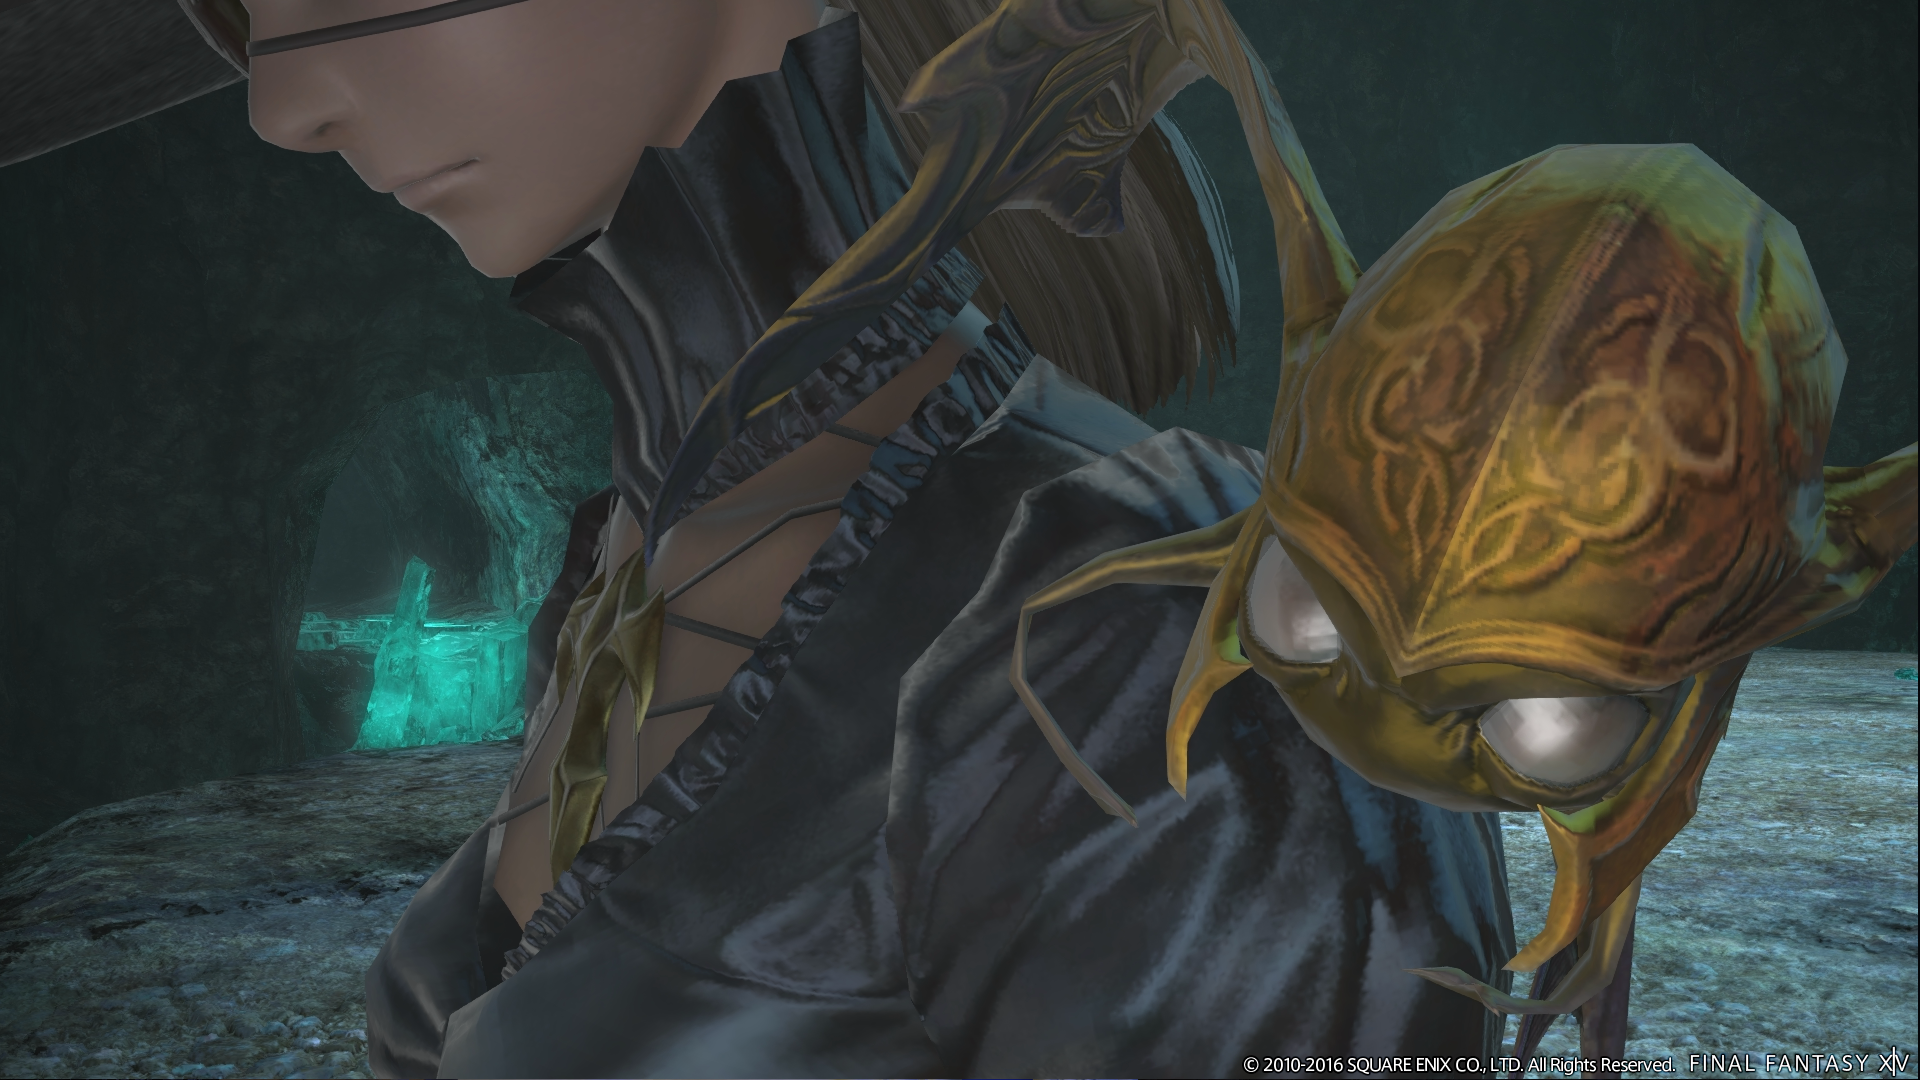 Final Fantasy XIV hits 6M registered players, patches in the